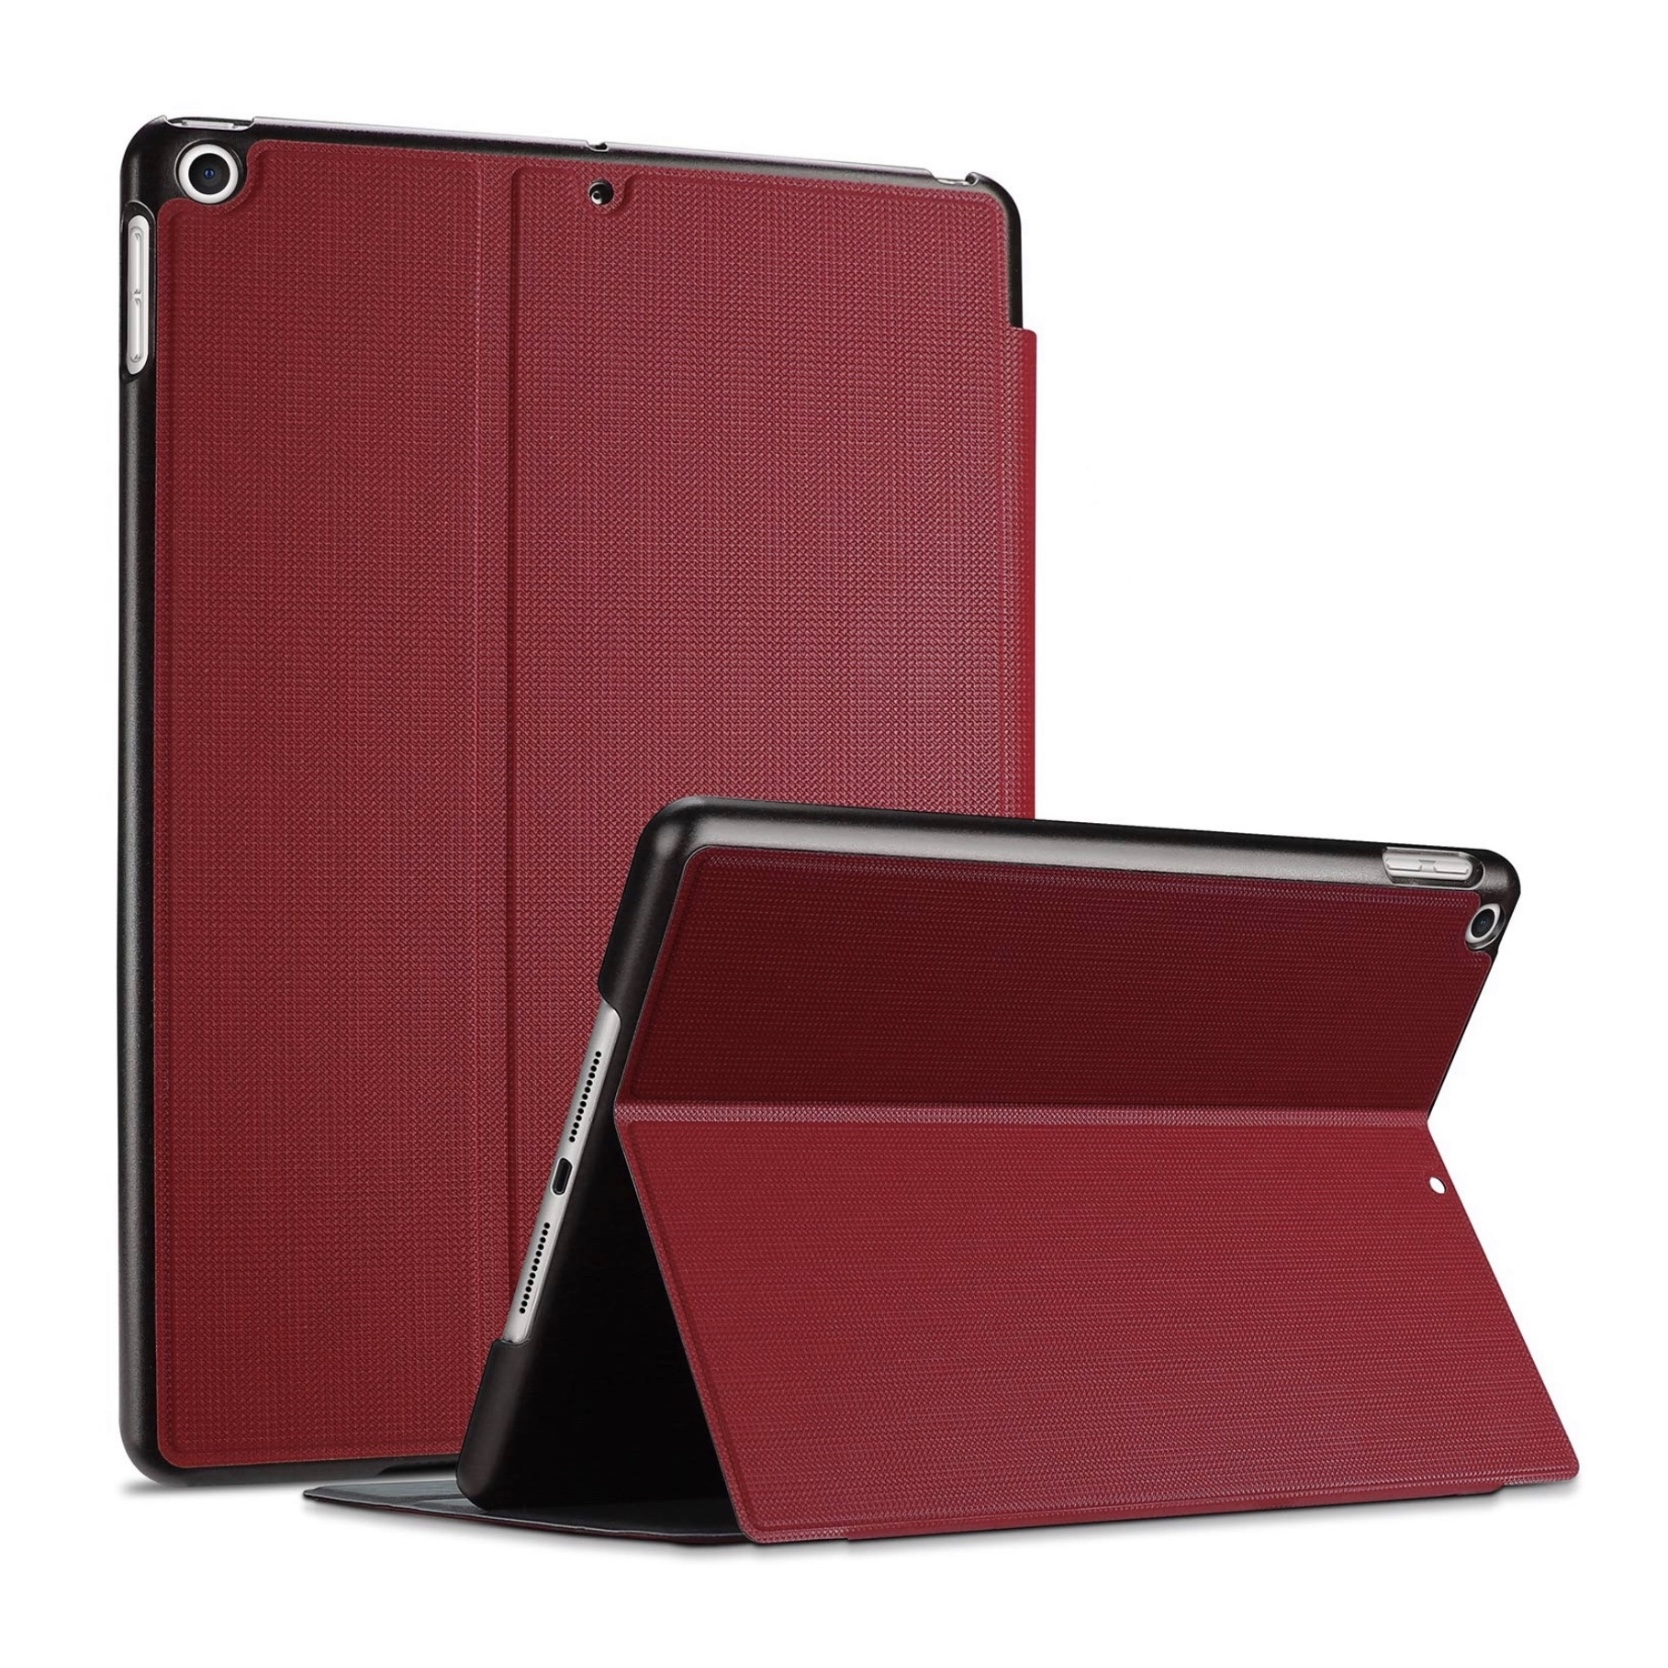 2 en 1 Etui Folio de protection Access et verre ecran renforce iPAD 10.2